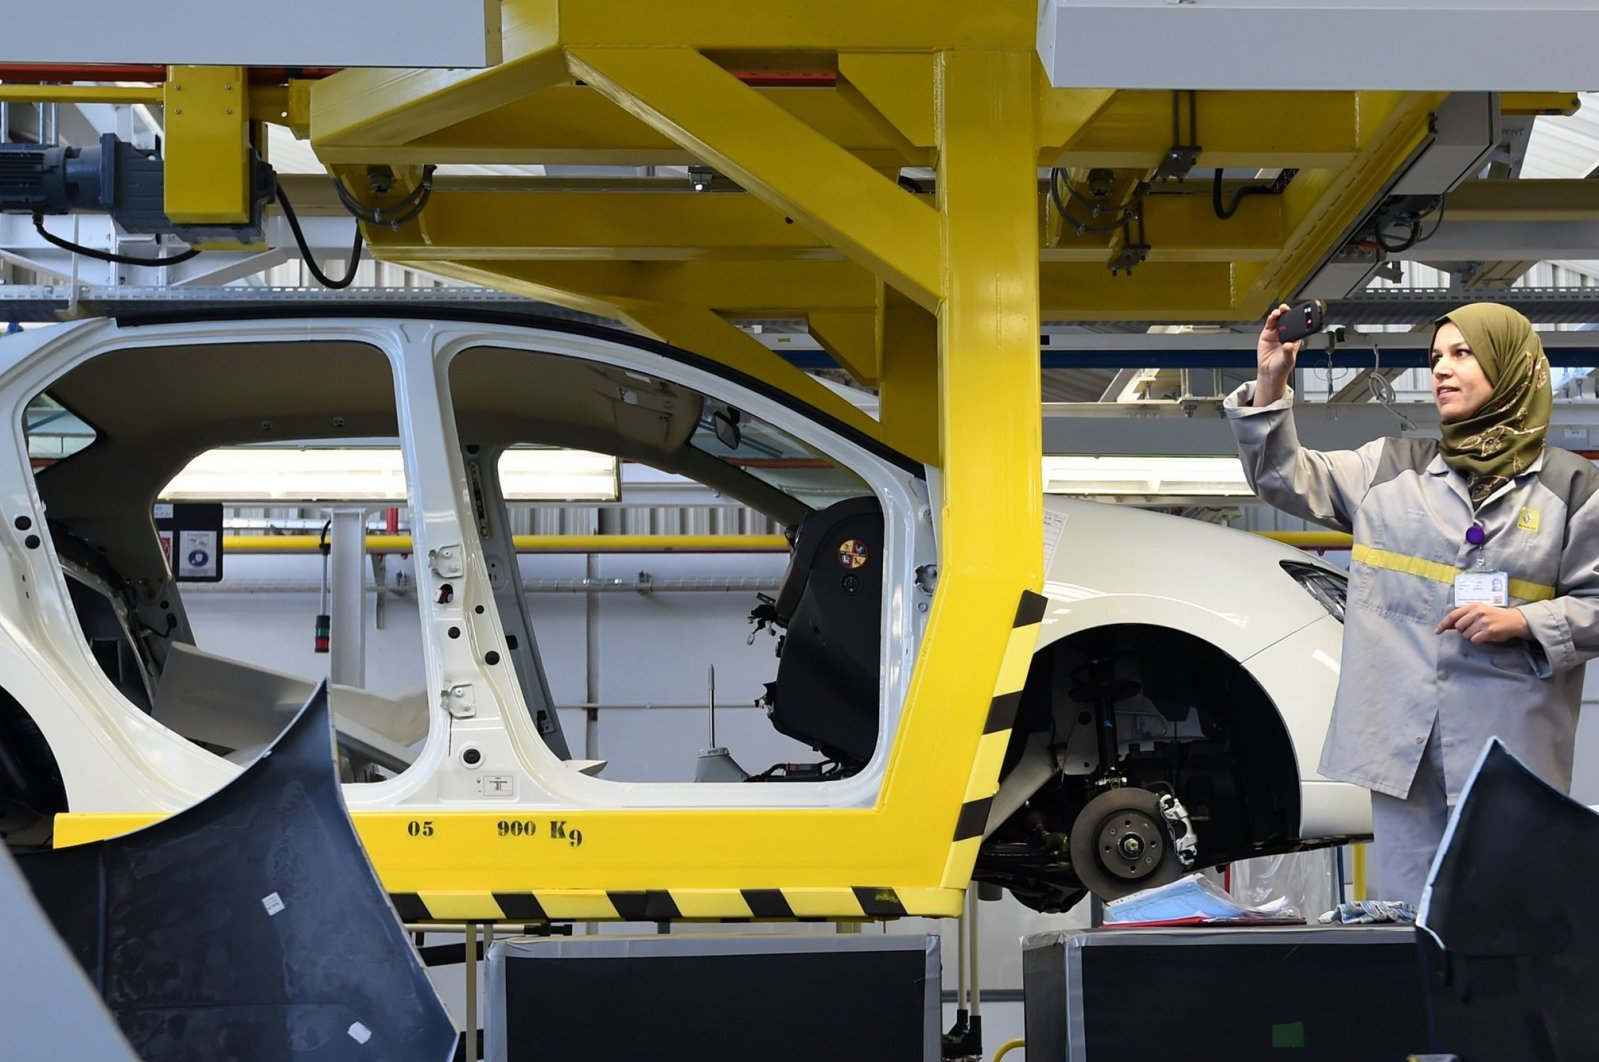 An employee of French carmaker Renault group takes a picture of a car on an assembly line during the inauguration of a new production plant, in Oued Tlelat, Oran, southern Algeria, Nov. 10, 2014. (AFP Photo)